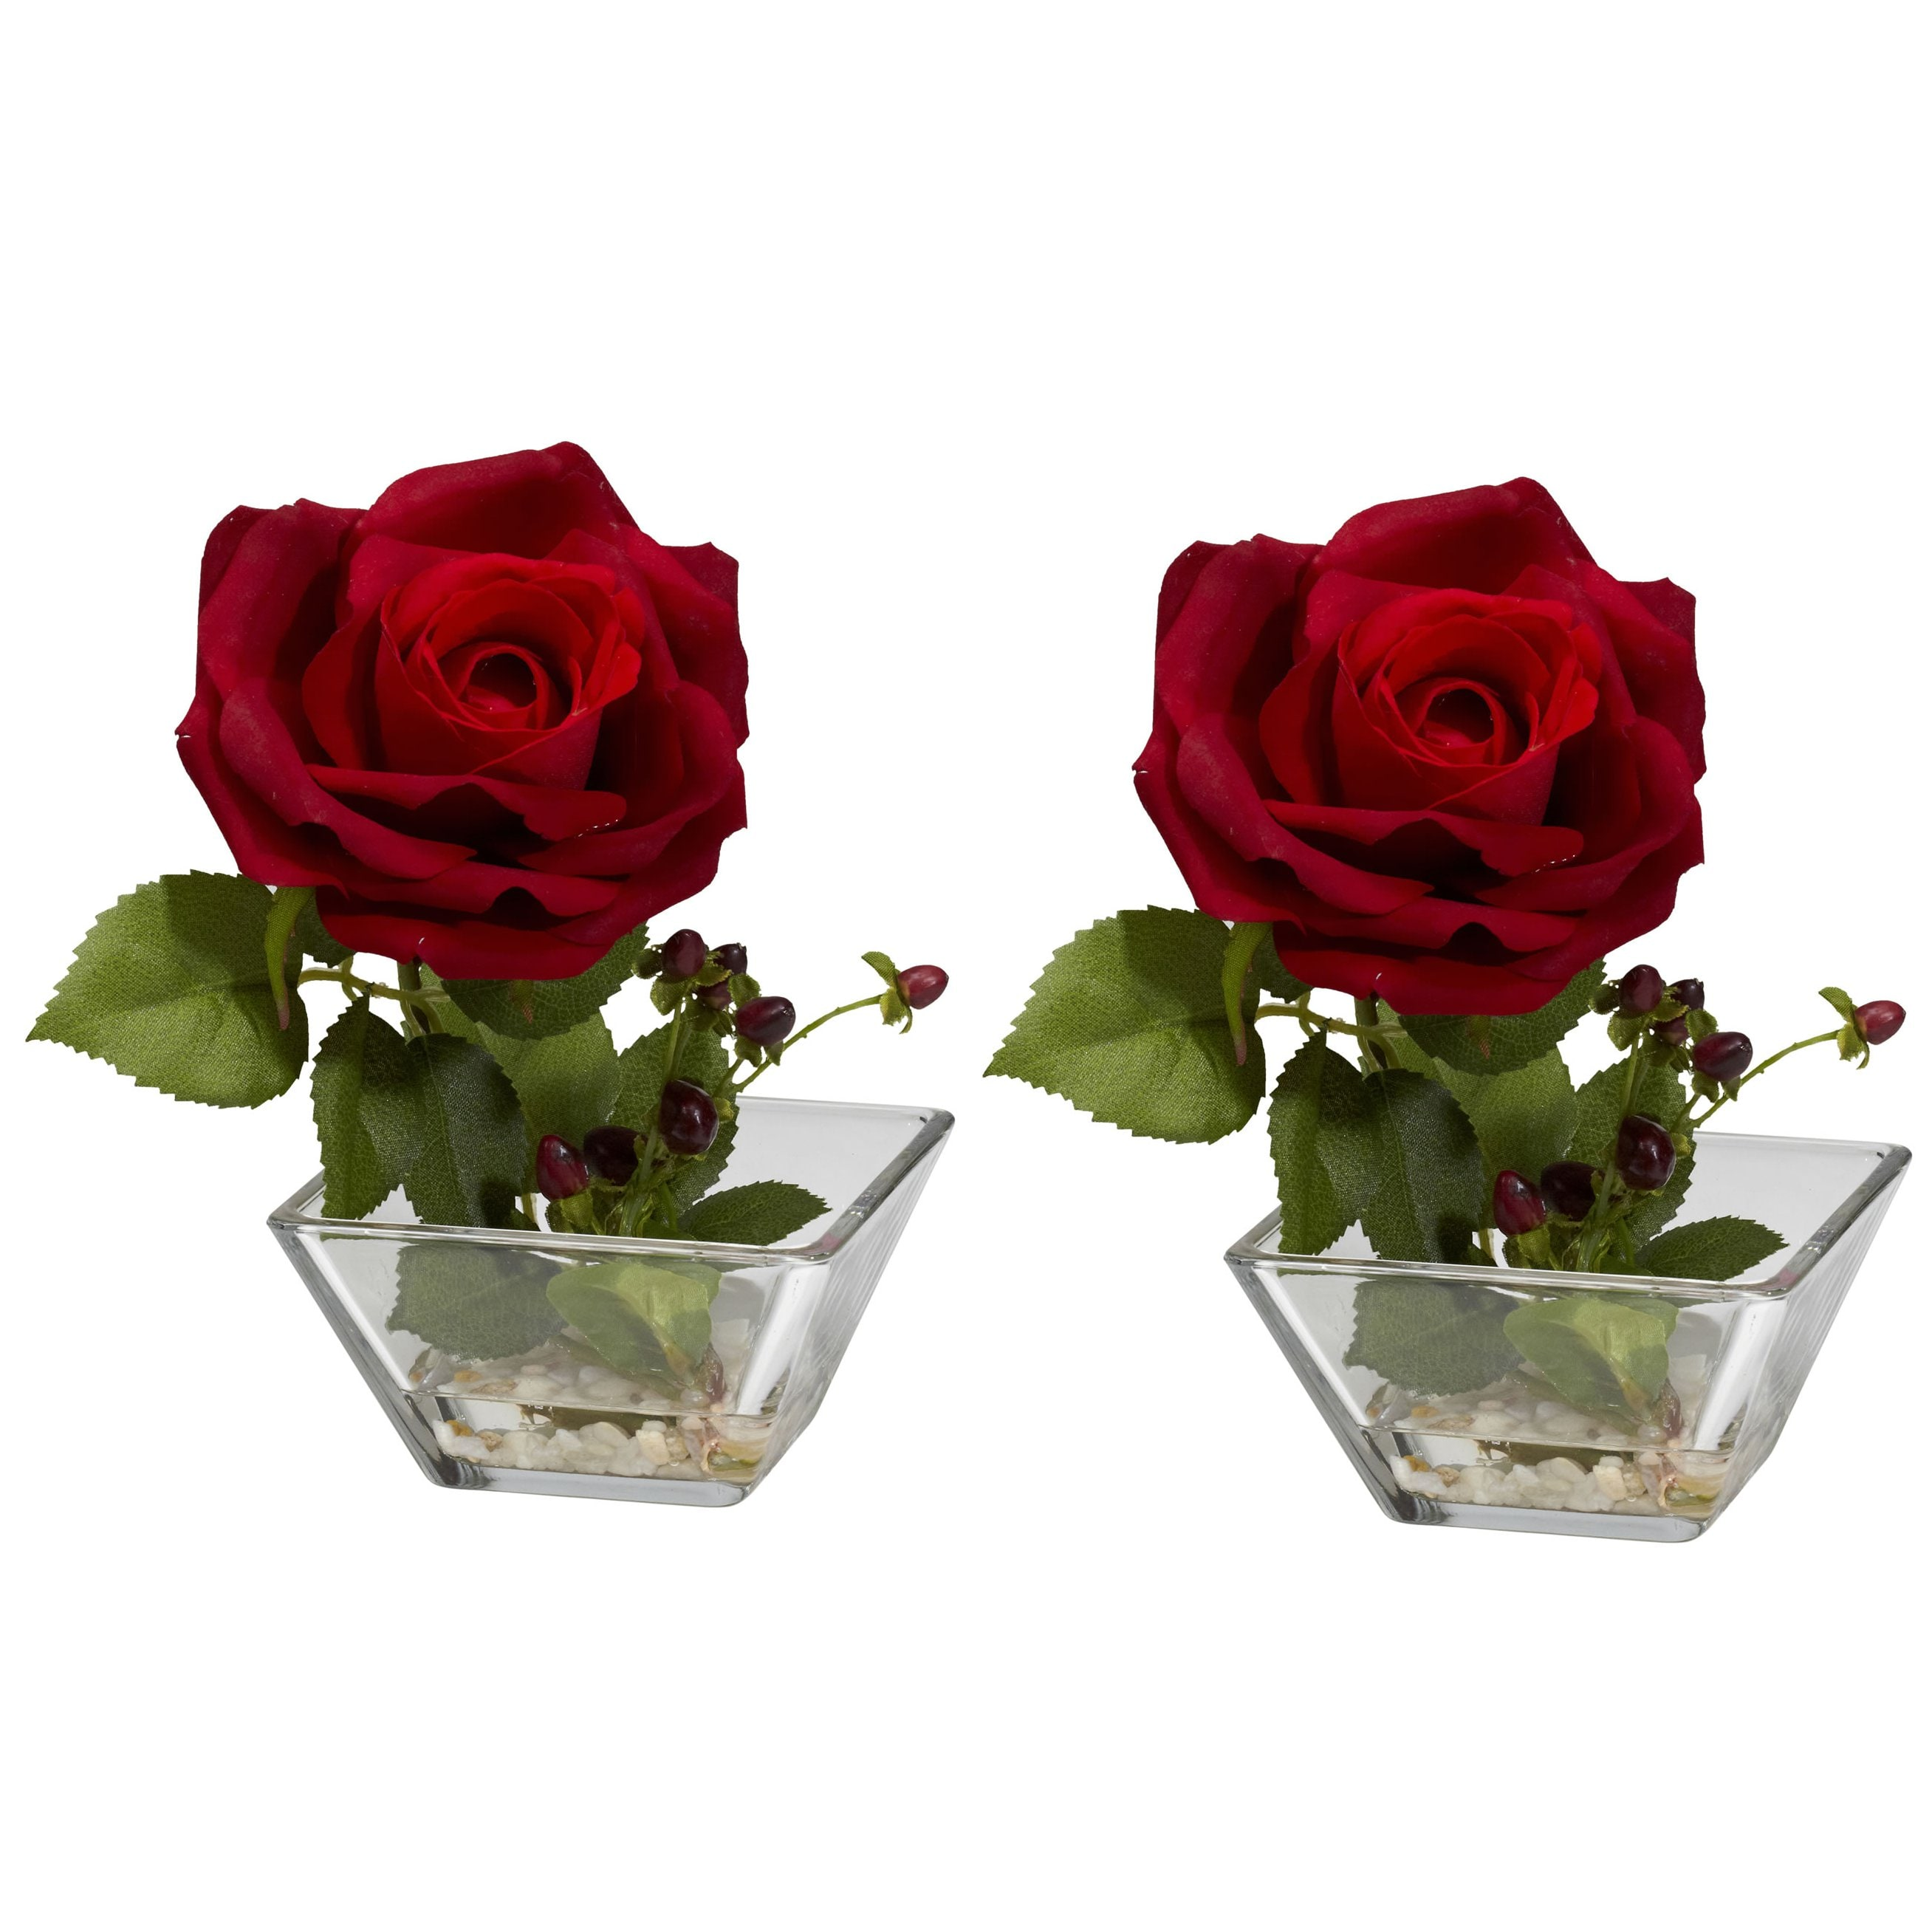 Rose square vase silk flower arrangement set of 2 - Flower arrangements for vases ...